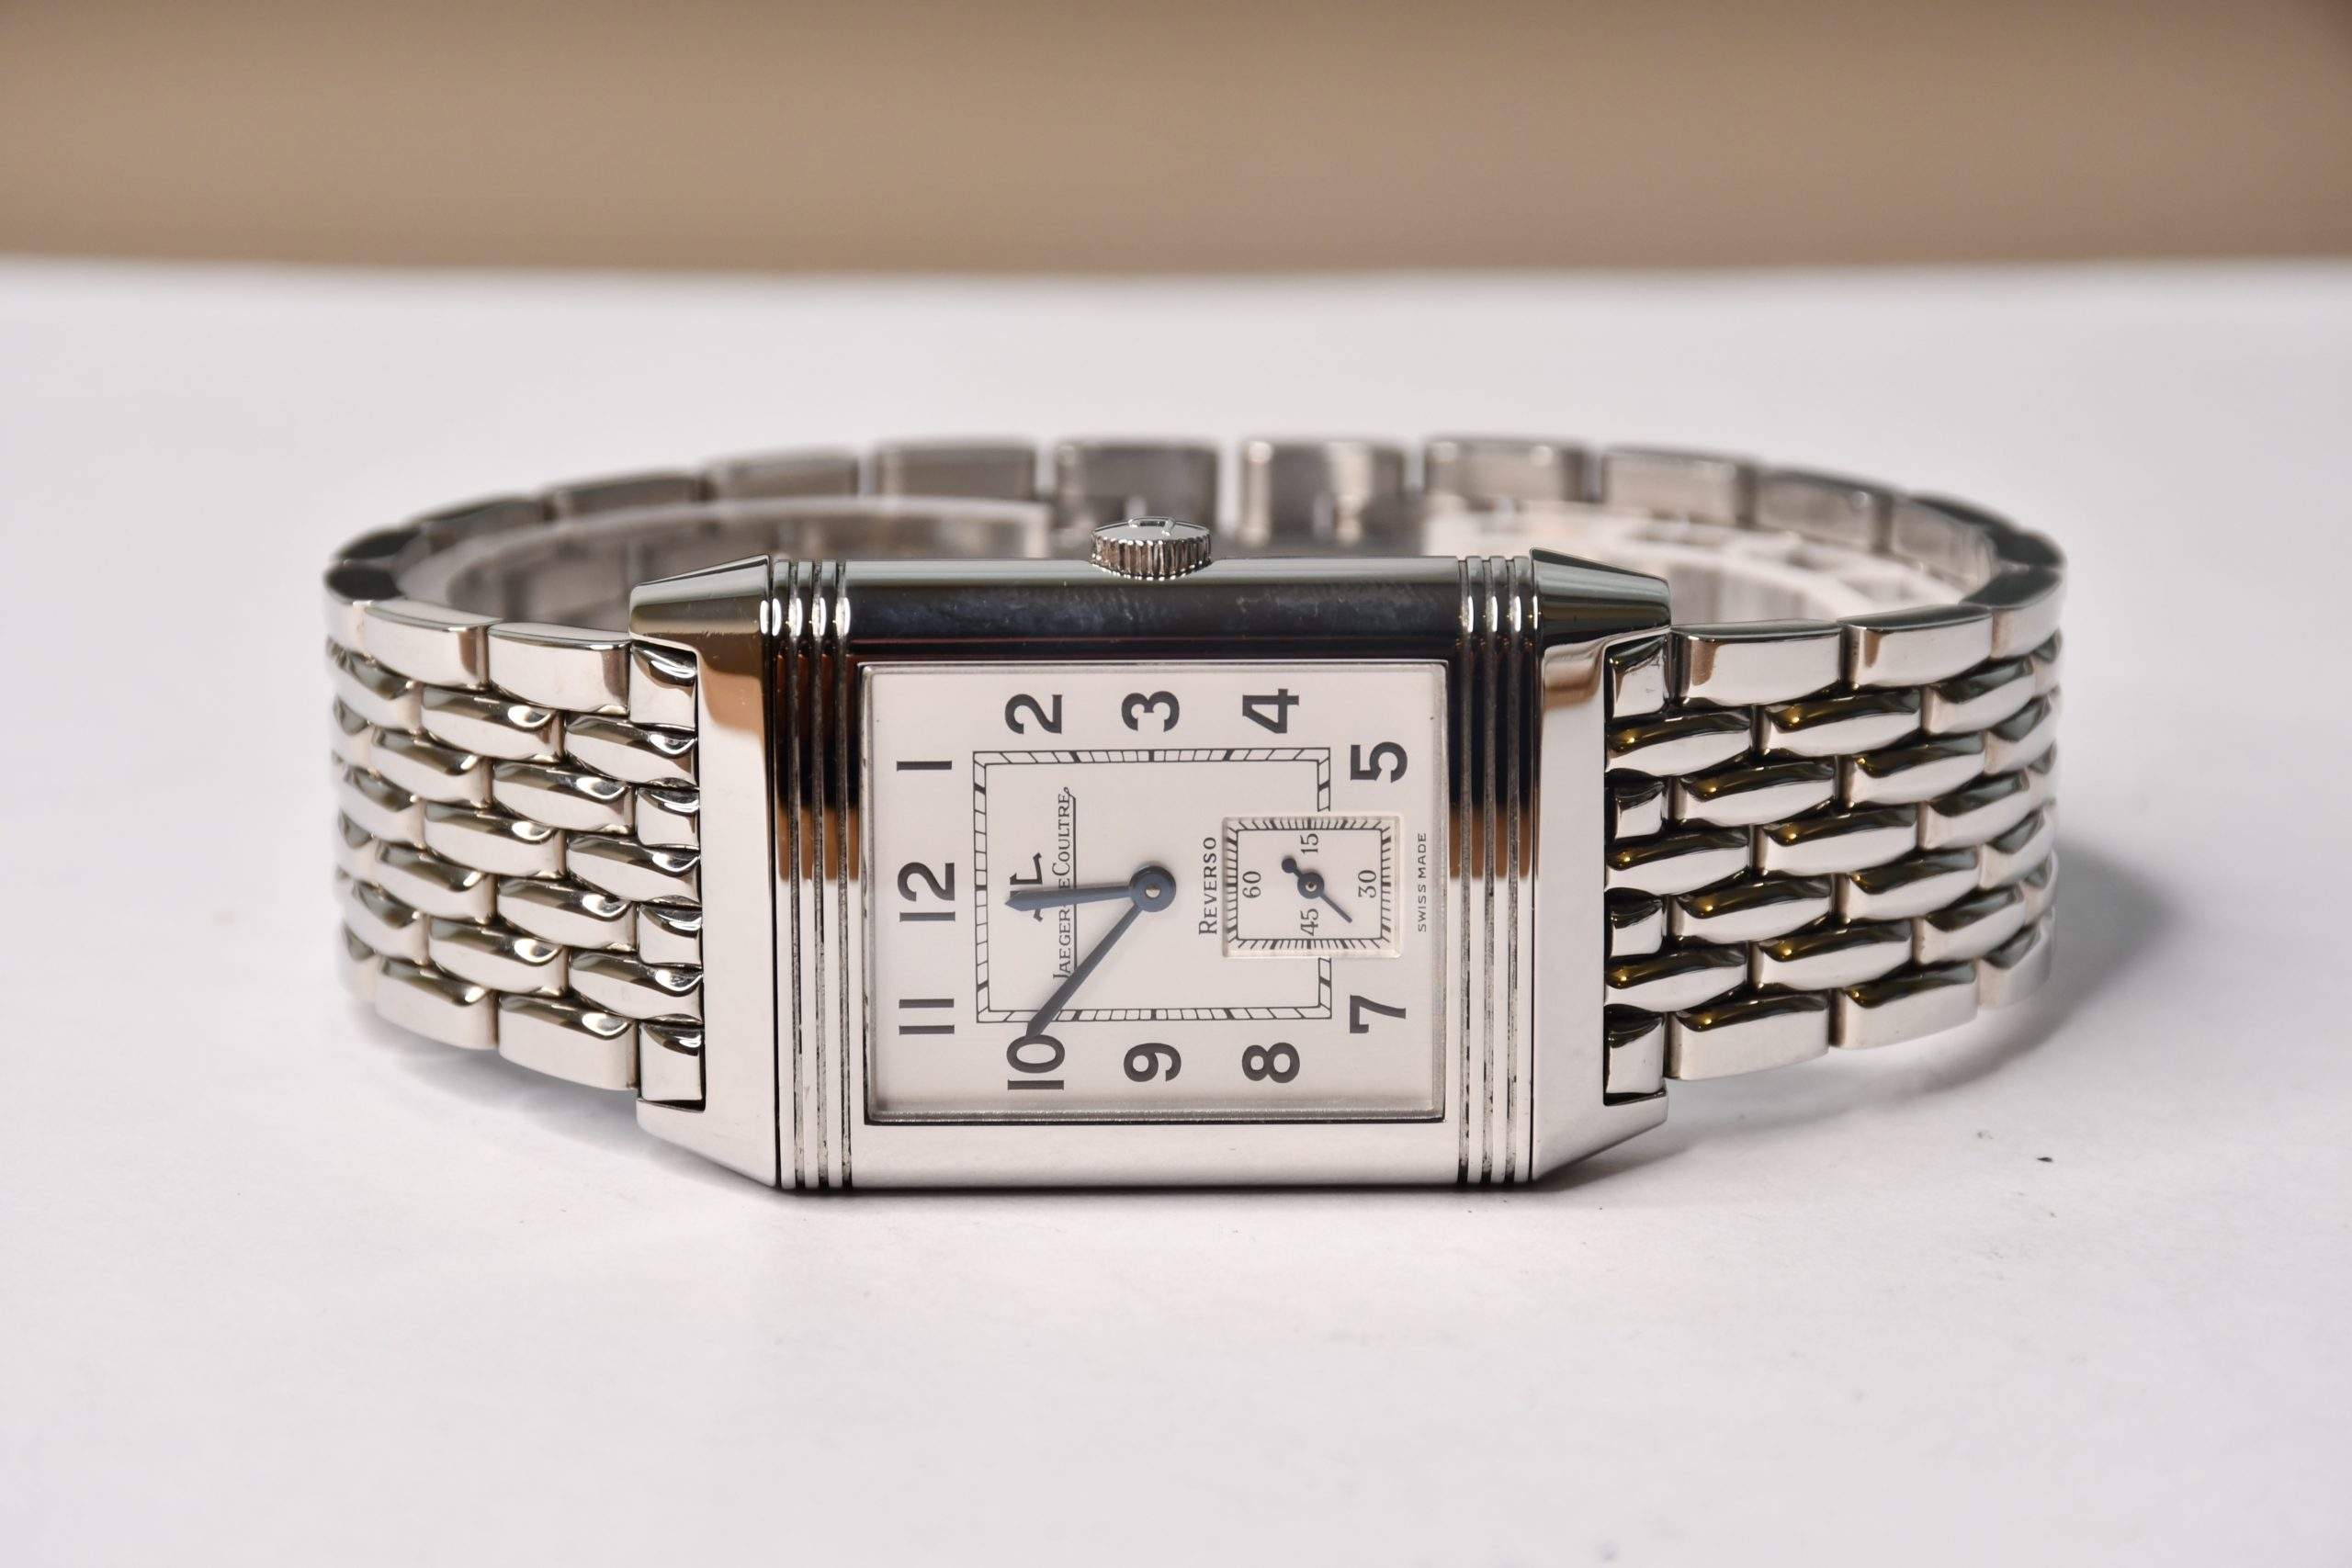 Jaeger-LeCoultre Reverso Grand Taille Ref. 270.8.62